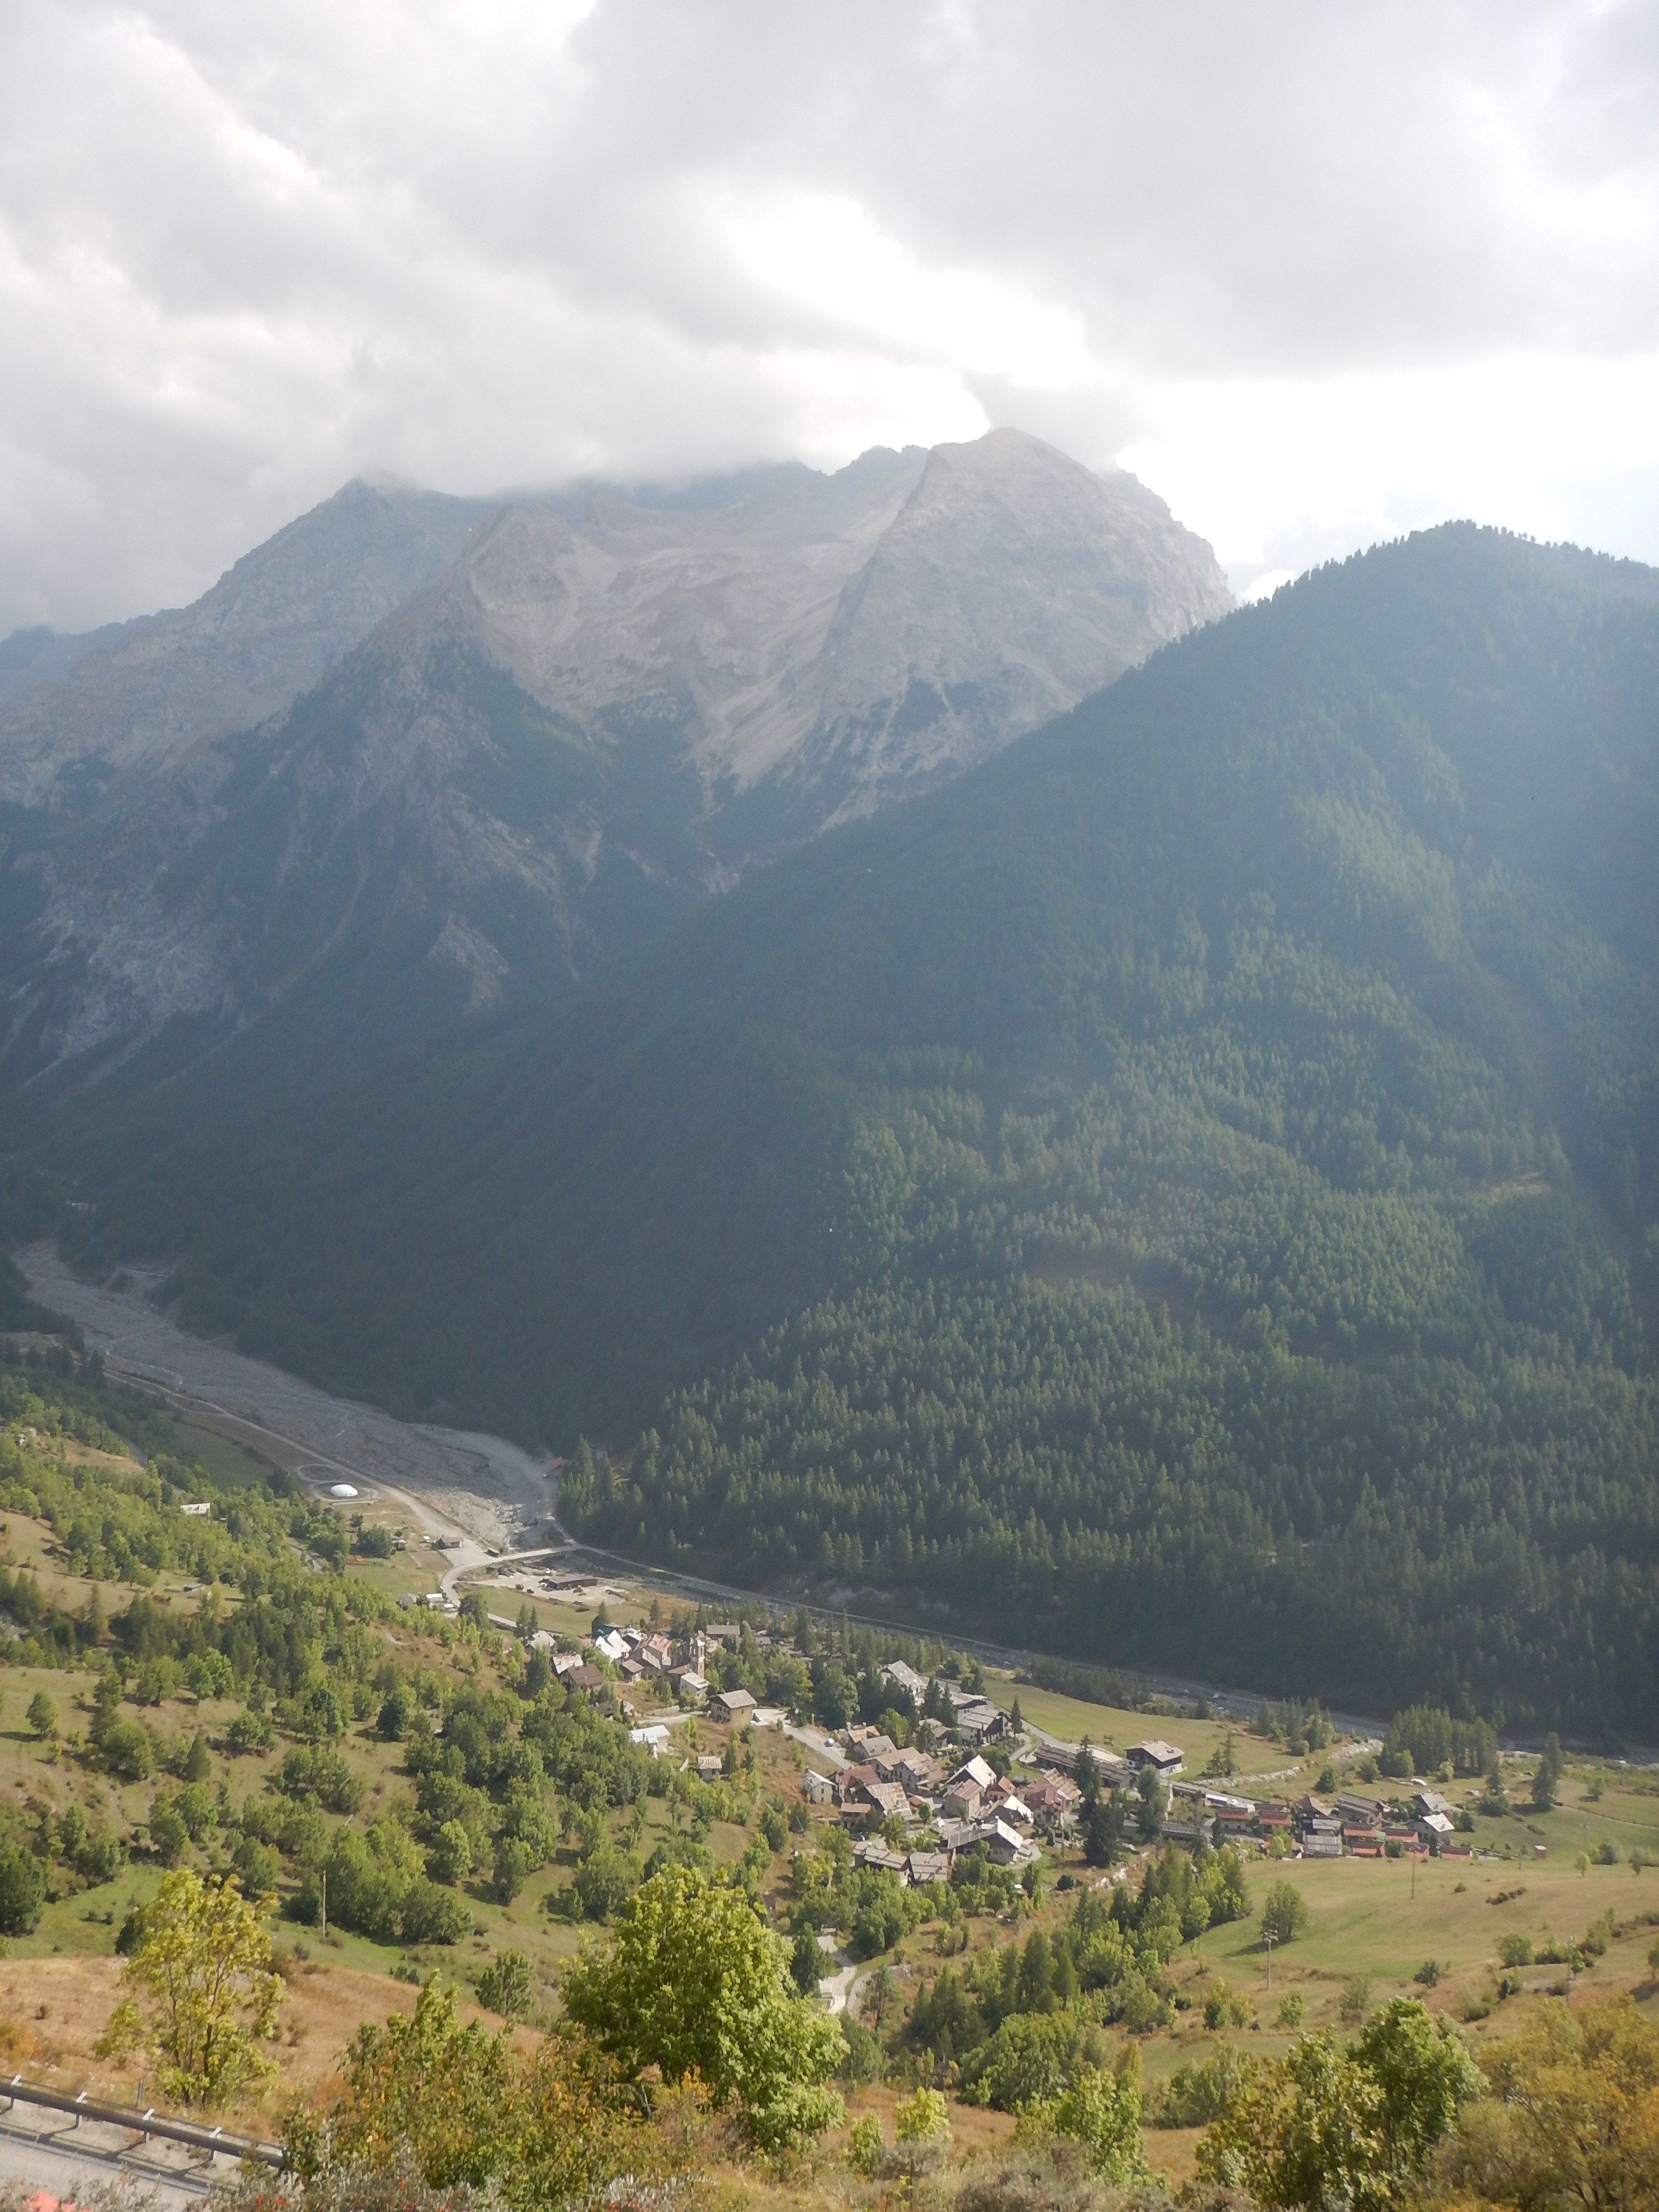 Looking down the valley to another of the early villages.